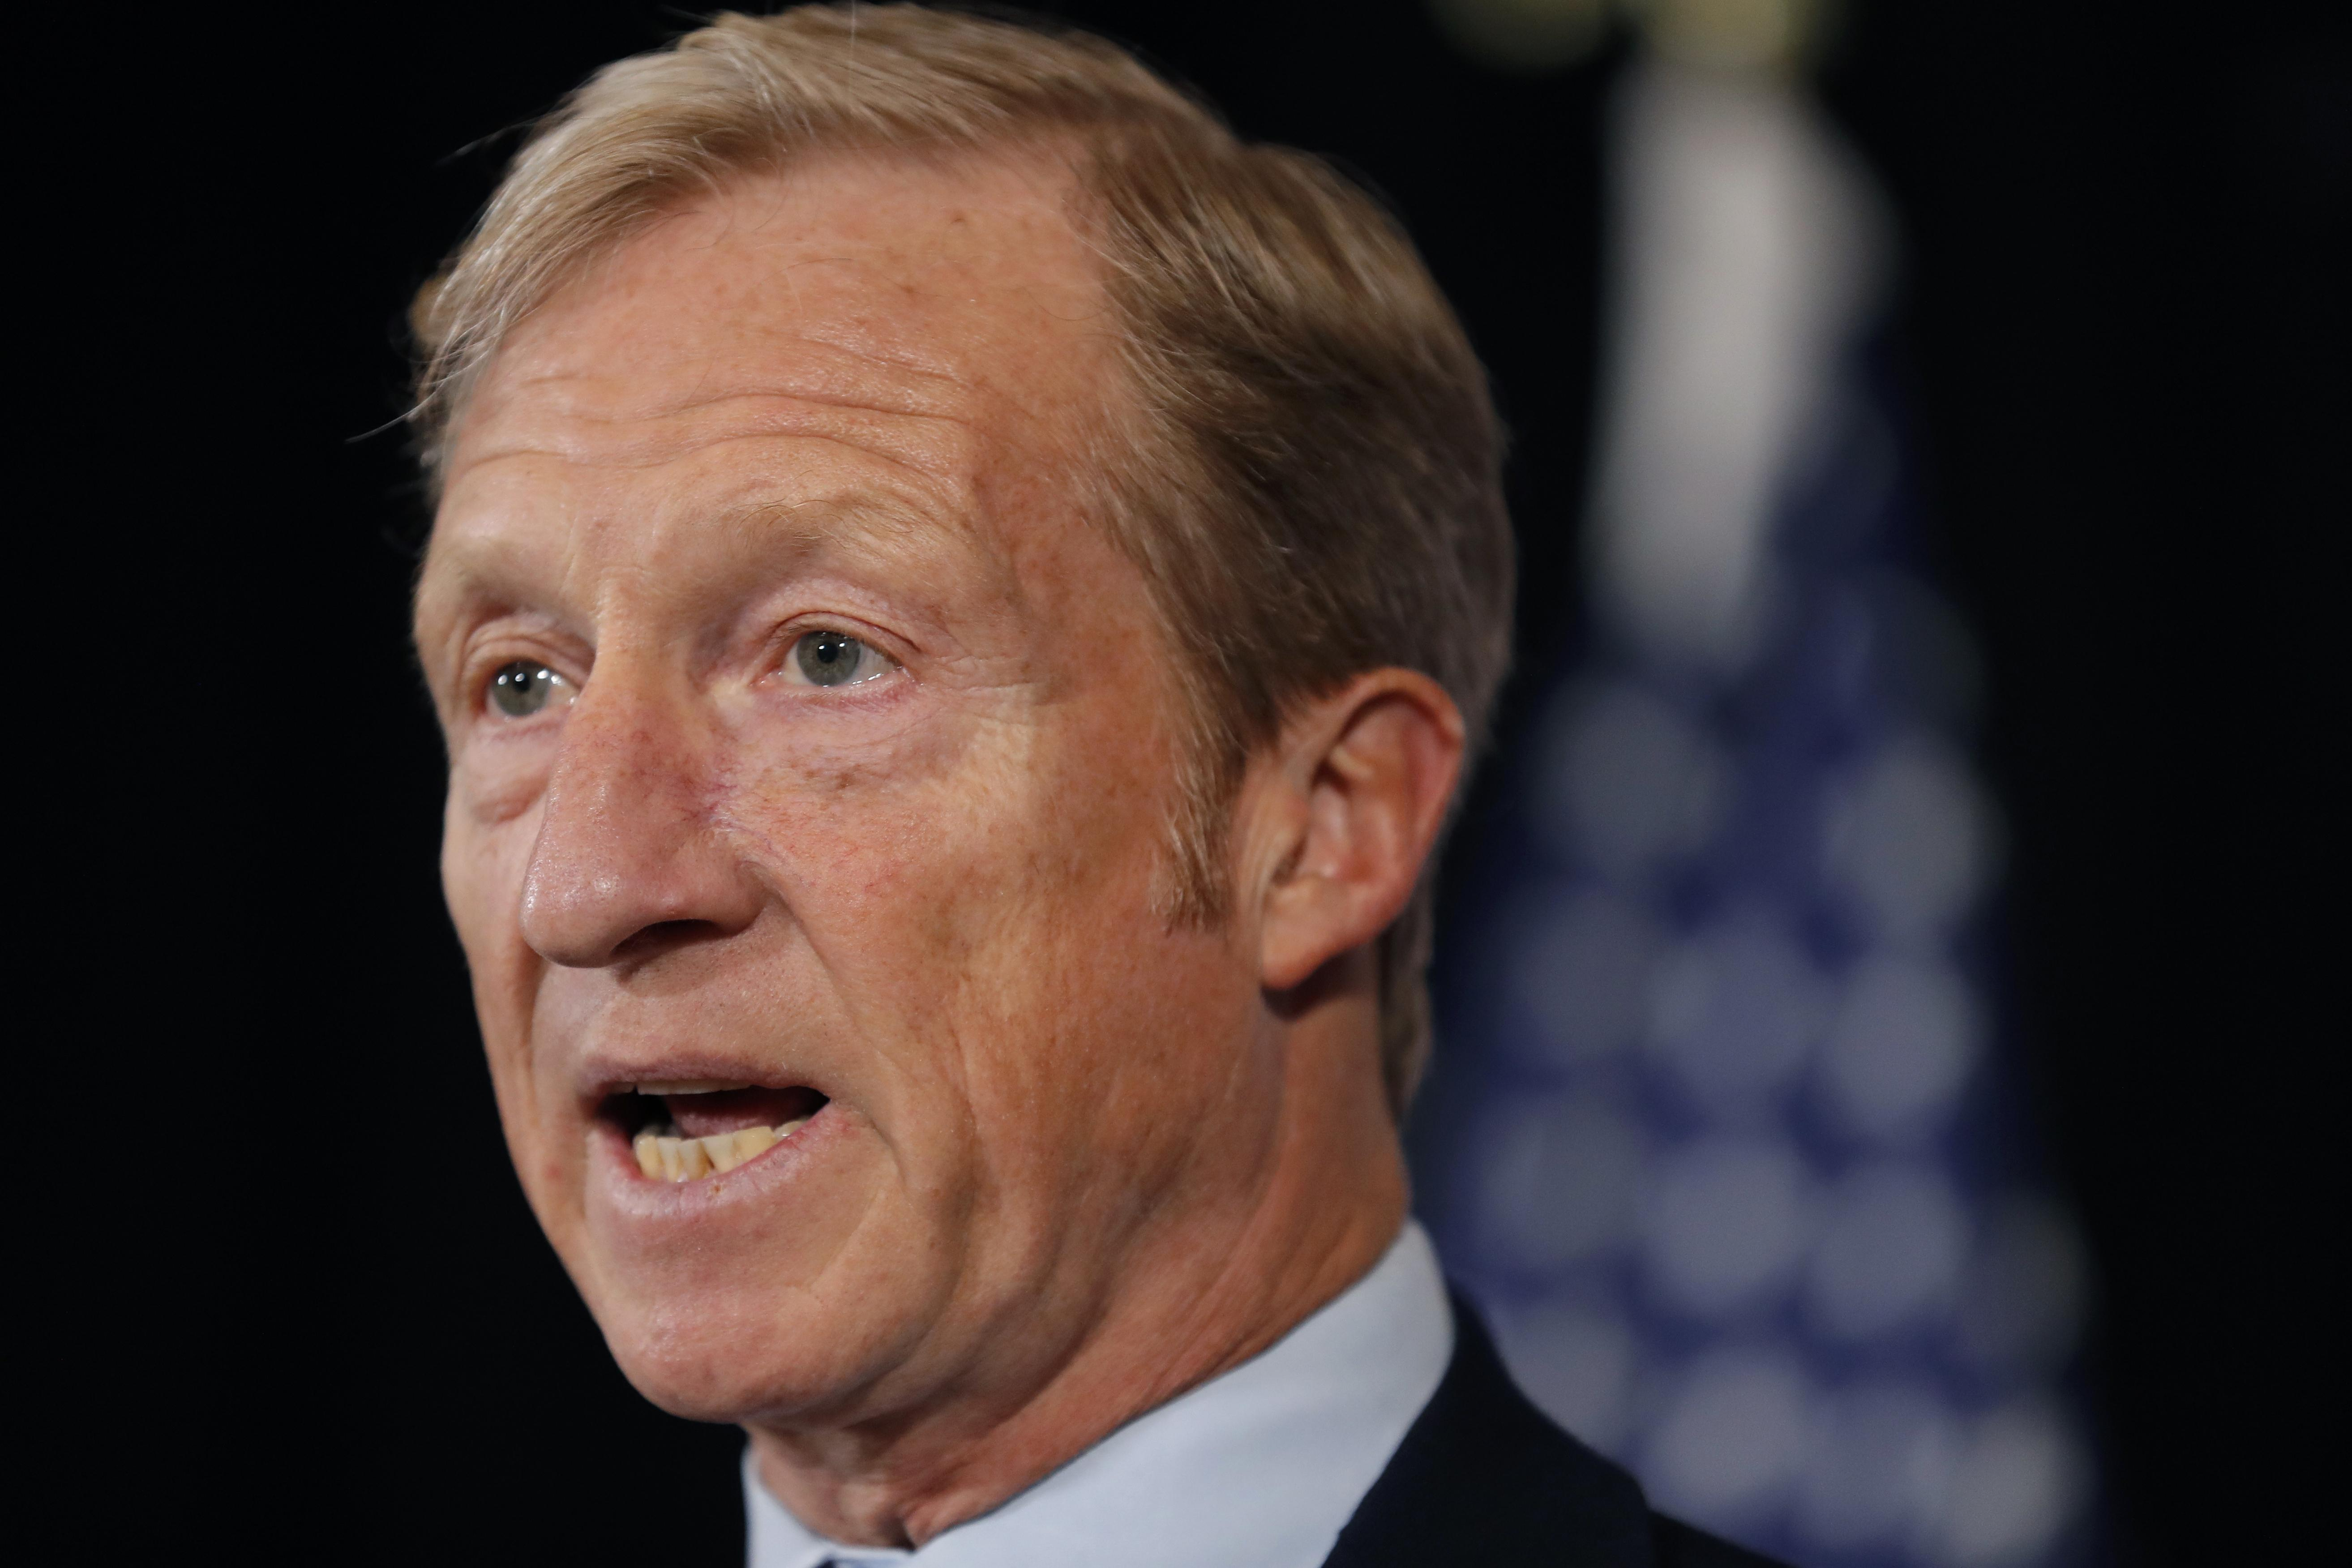 Tom Steyer's 'Need to Impeach' targets Democratic leadership in latest campaign